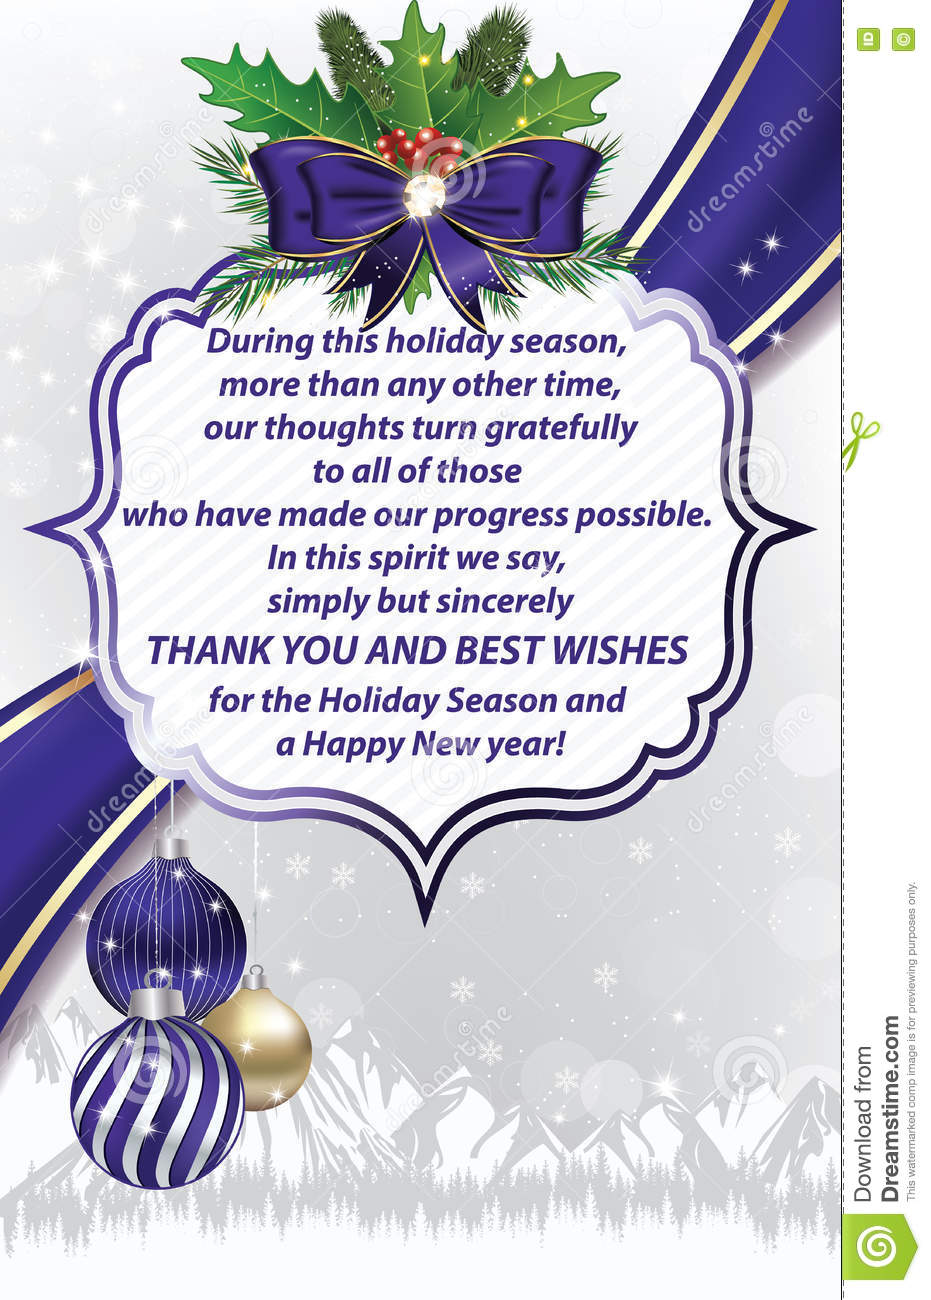 Thank You Business Winter Holiday Greeting Card Stock Illustration ...